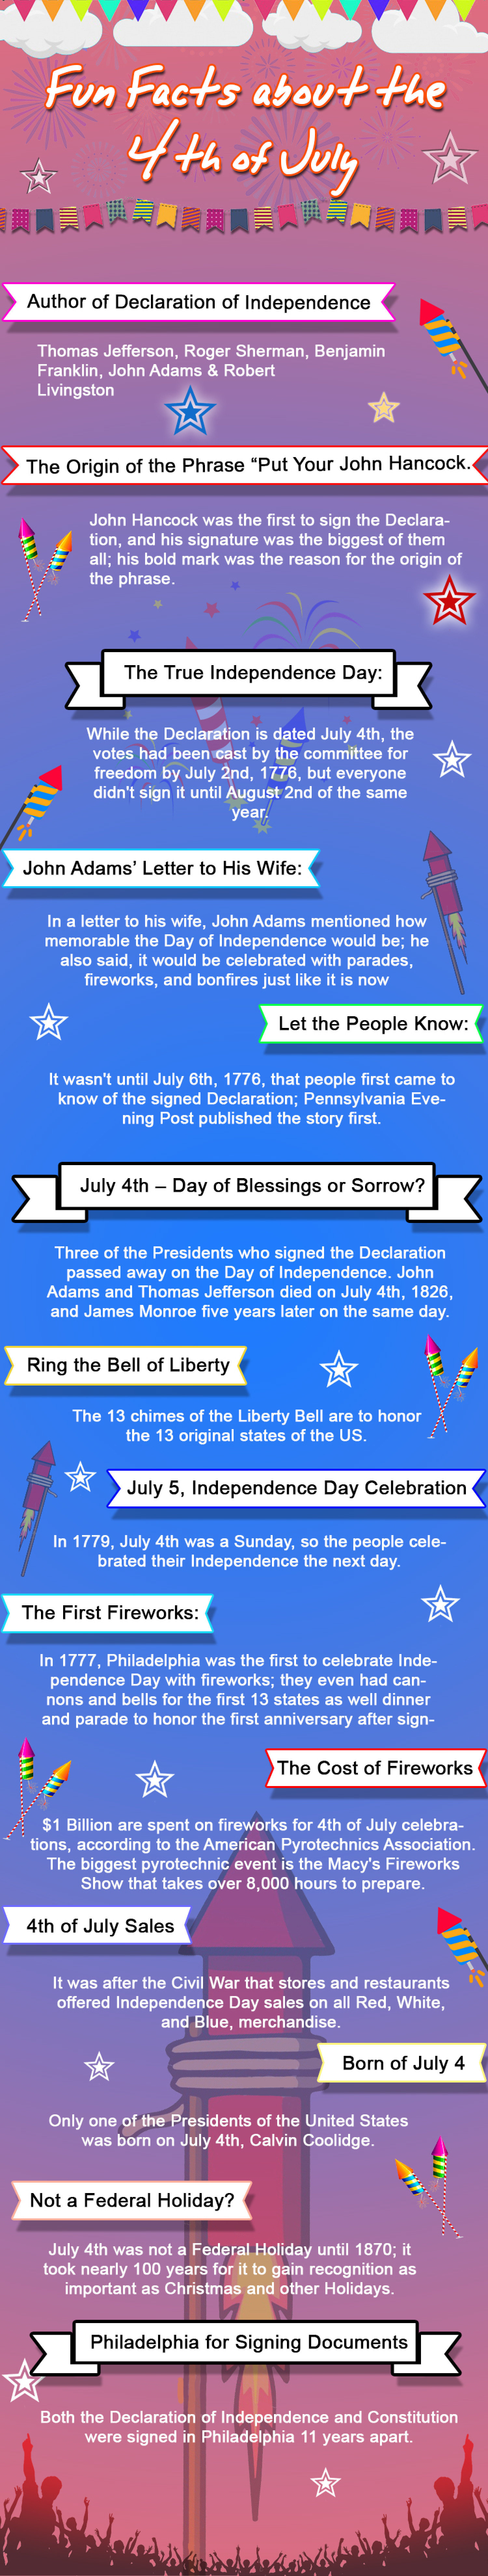 facts about 4th of July Infographic